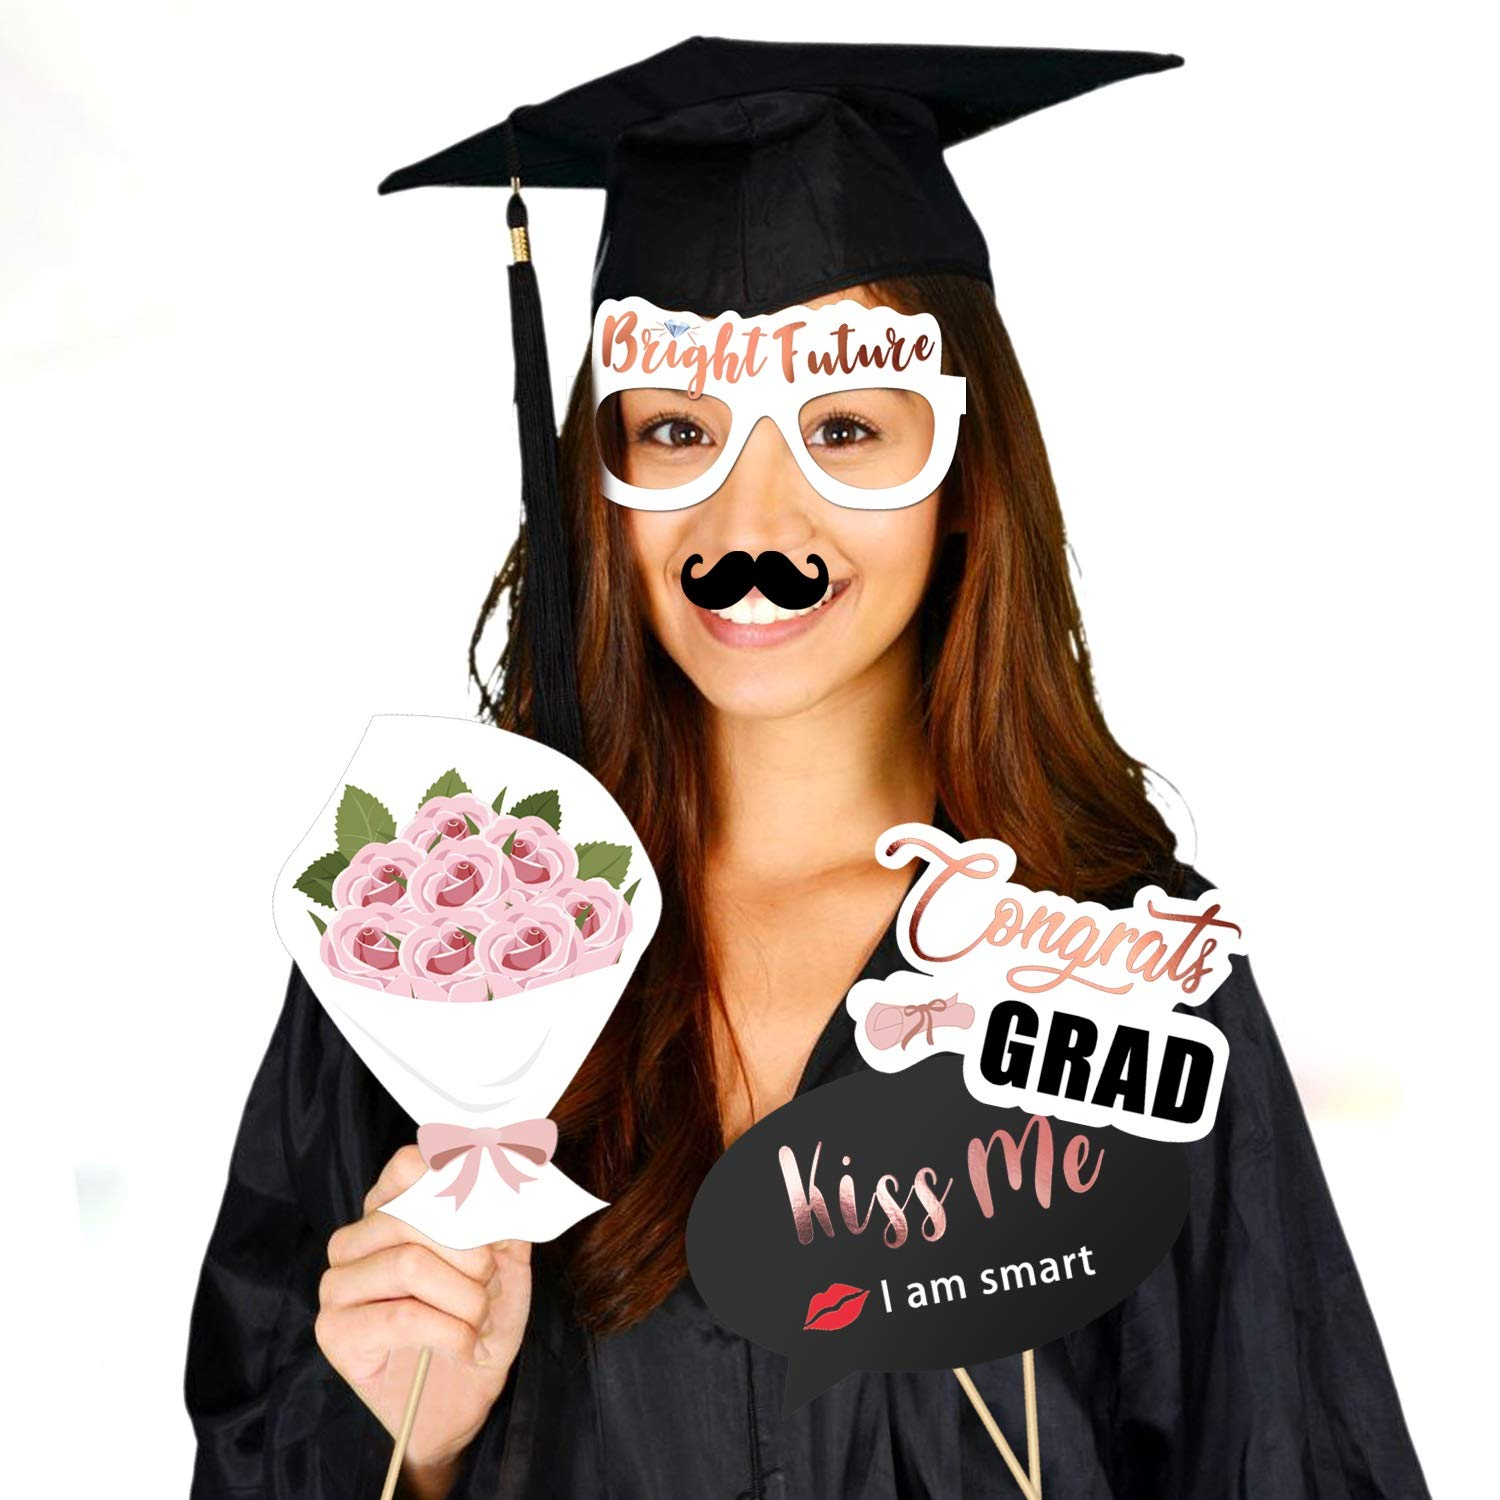 Konsait 39pcs Rose Gold Graduation Photo Booth Props Party Supplies Class of 2019 Graduation Party Decoration Graduation Party Favors Accessories